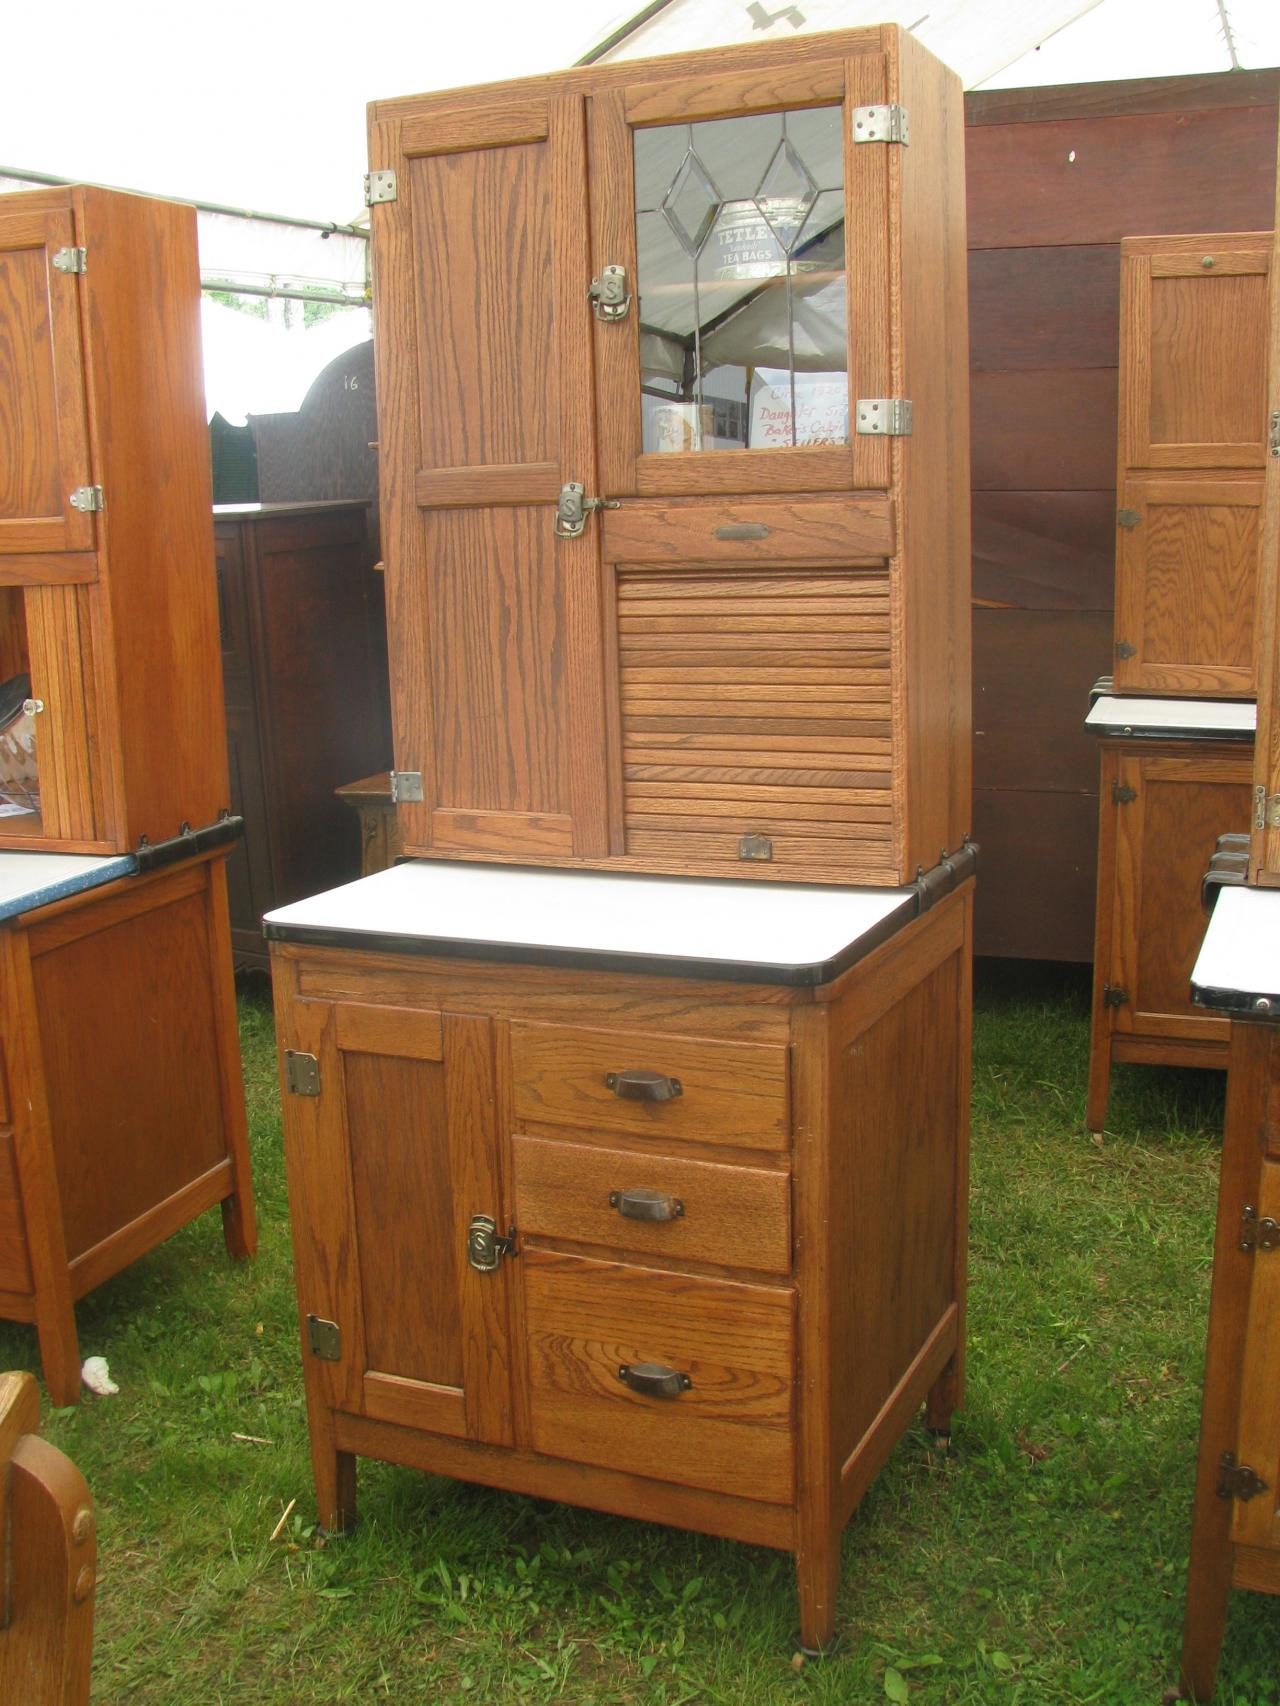 Superb Bakeru0027s Cabinet Circa 1905 Coppes Zook Matschler Co; Daughter Size Sellers  Cabinet, Just Received, Two In Stock, $2595.00@ ...